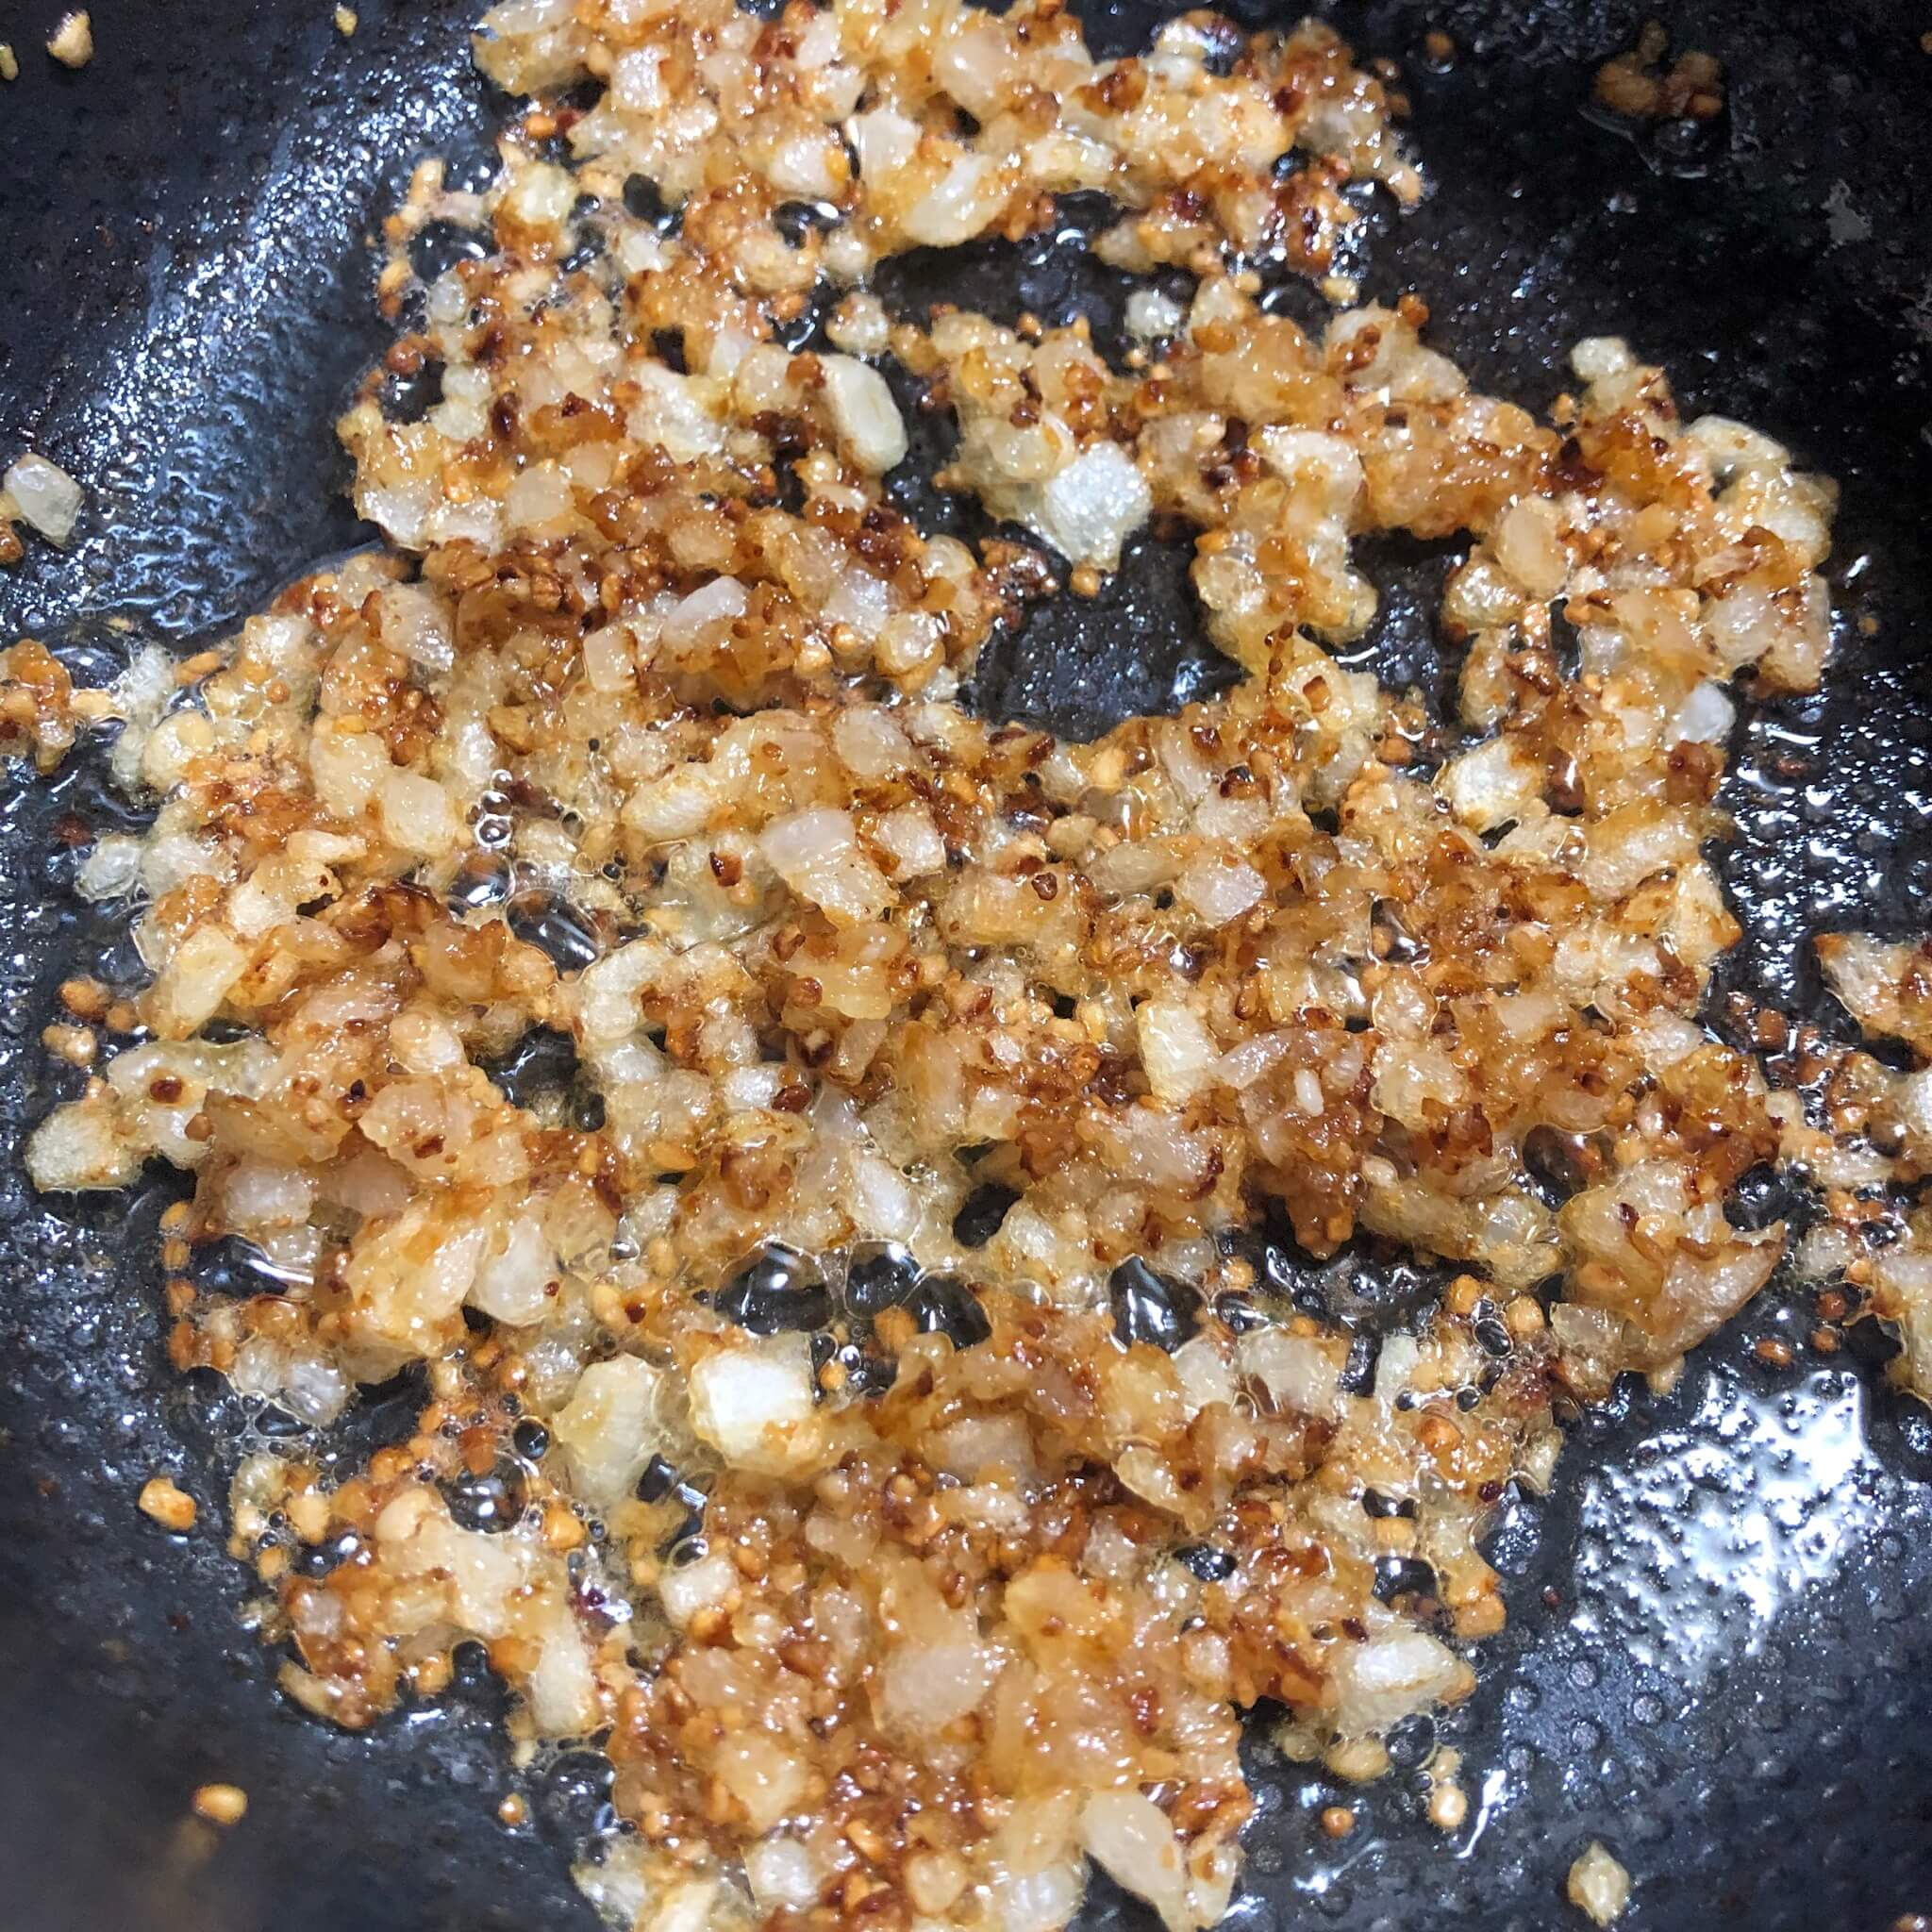 caramelized onion for easy vegan tomato pasta